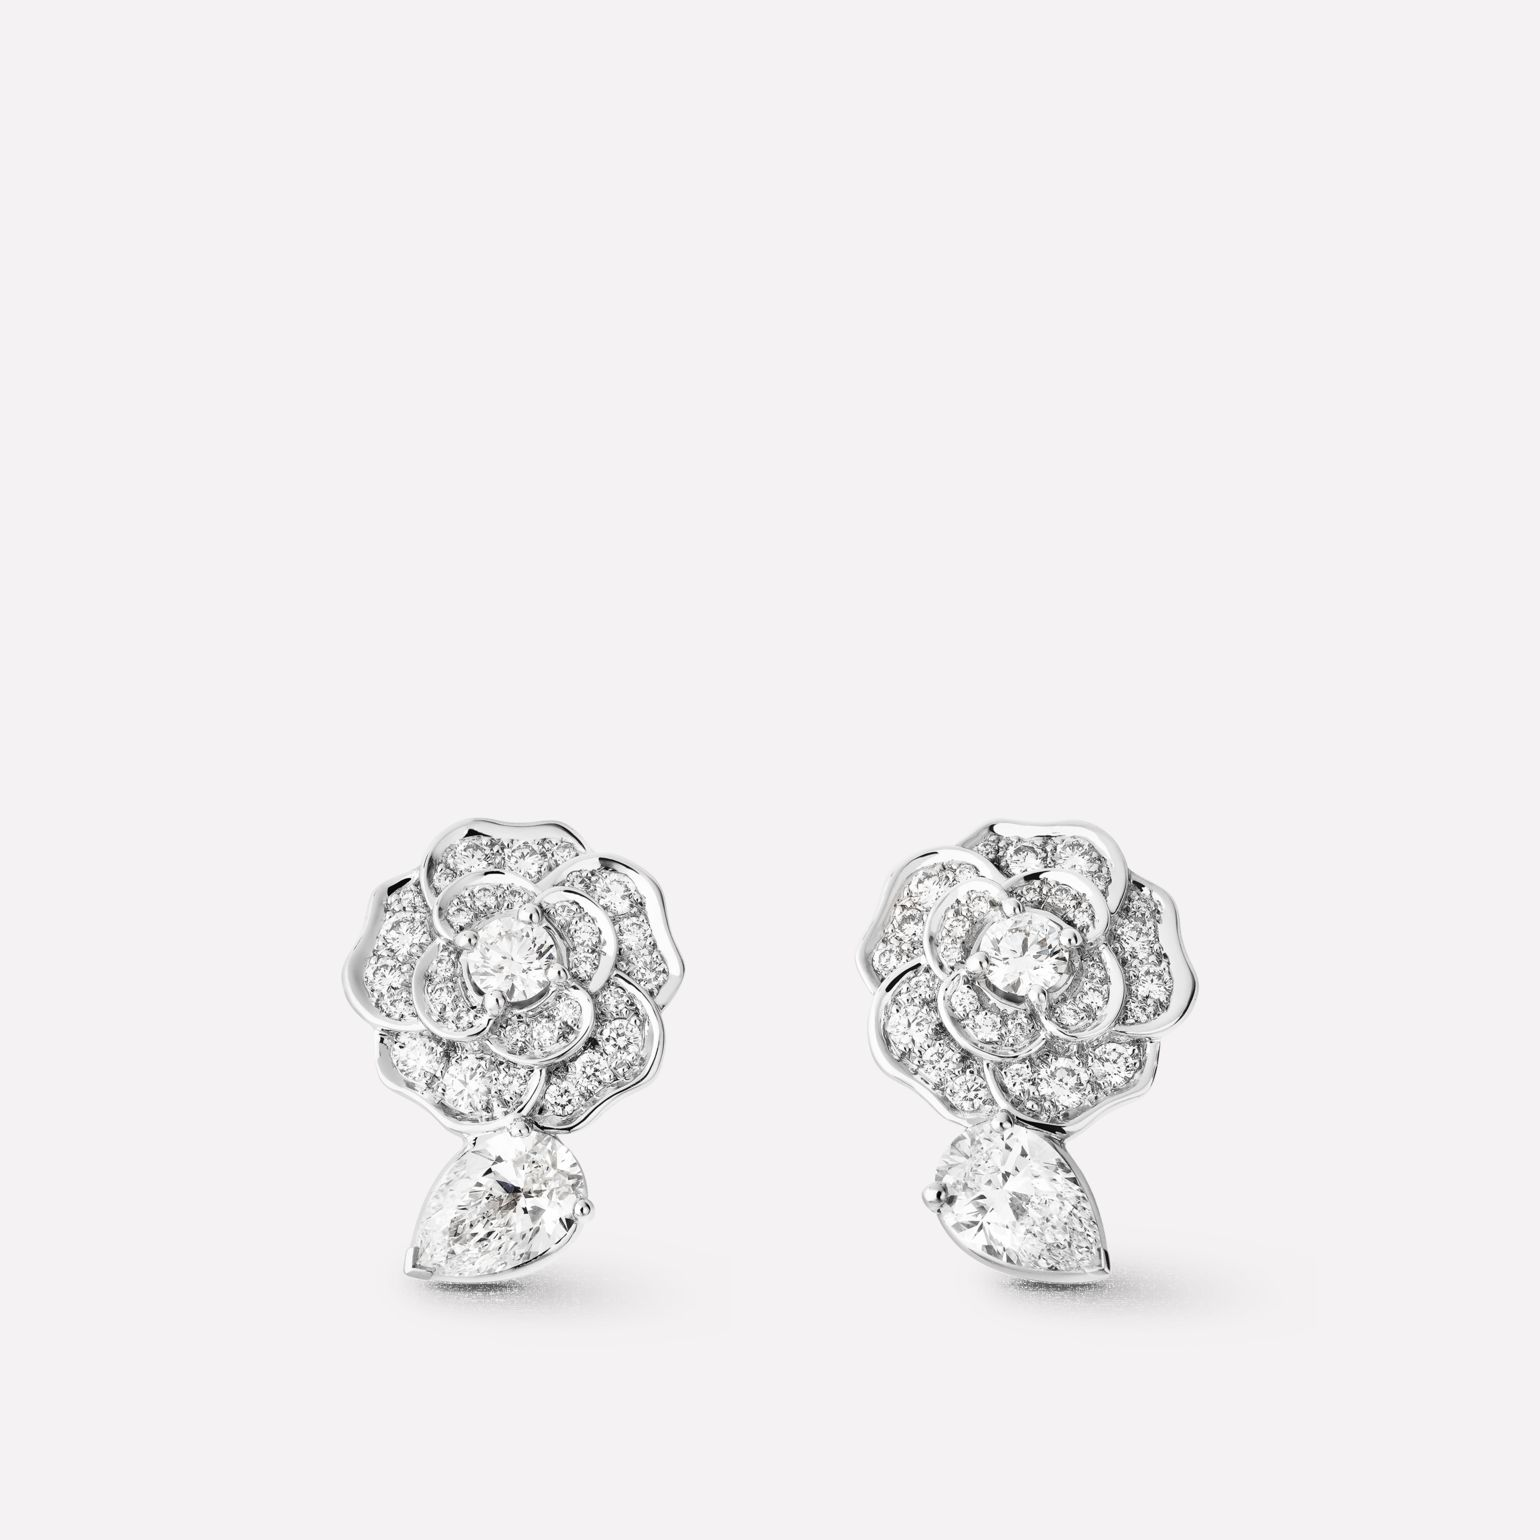 Camélia Précieux earrings 18K white gold, diamonds